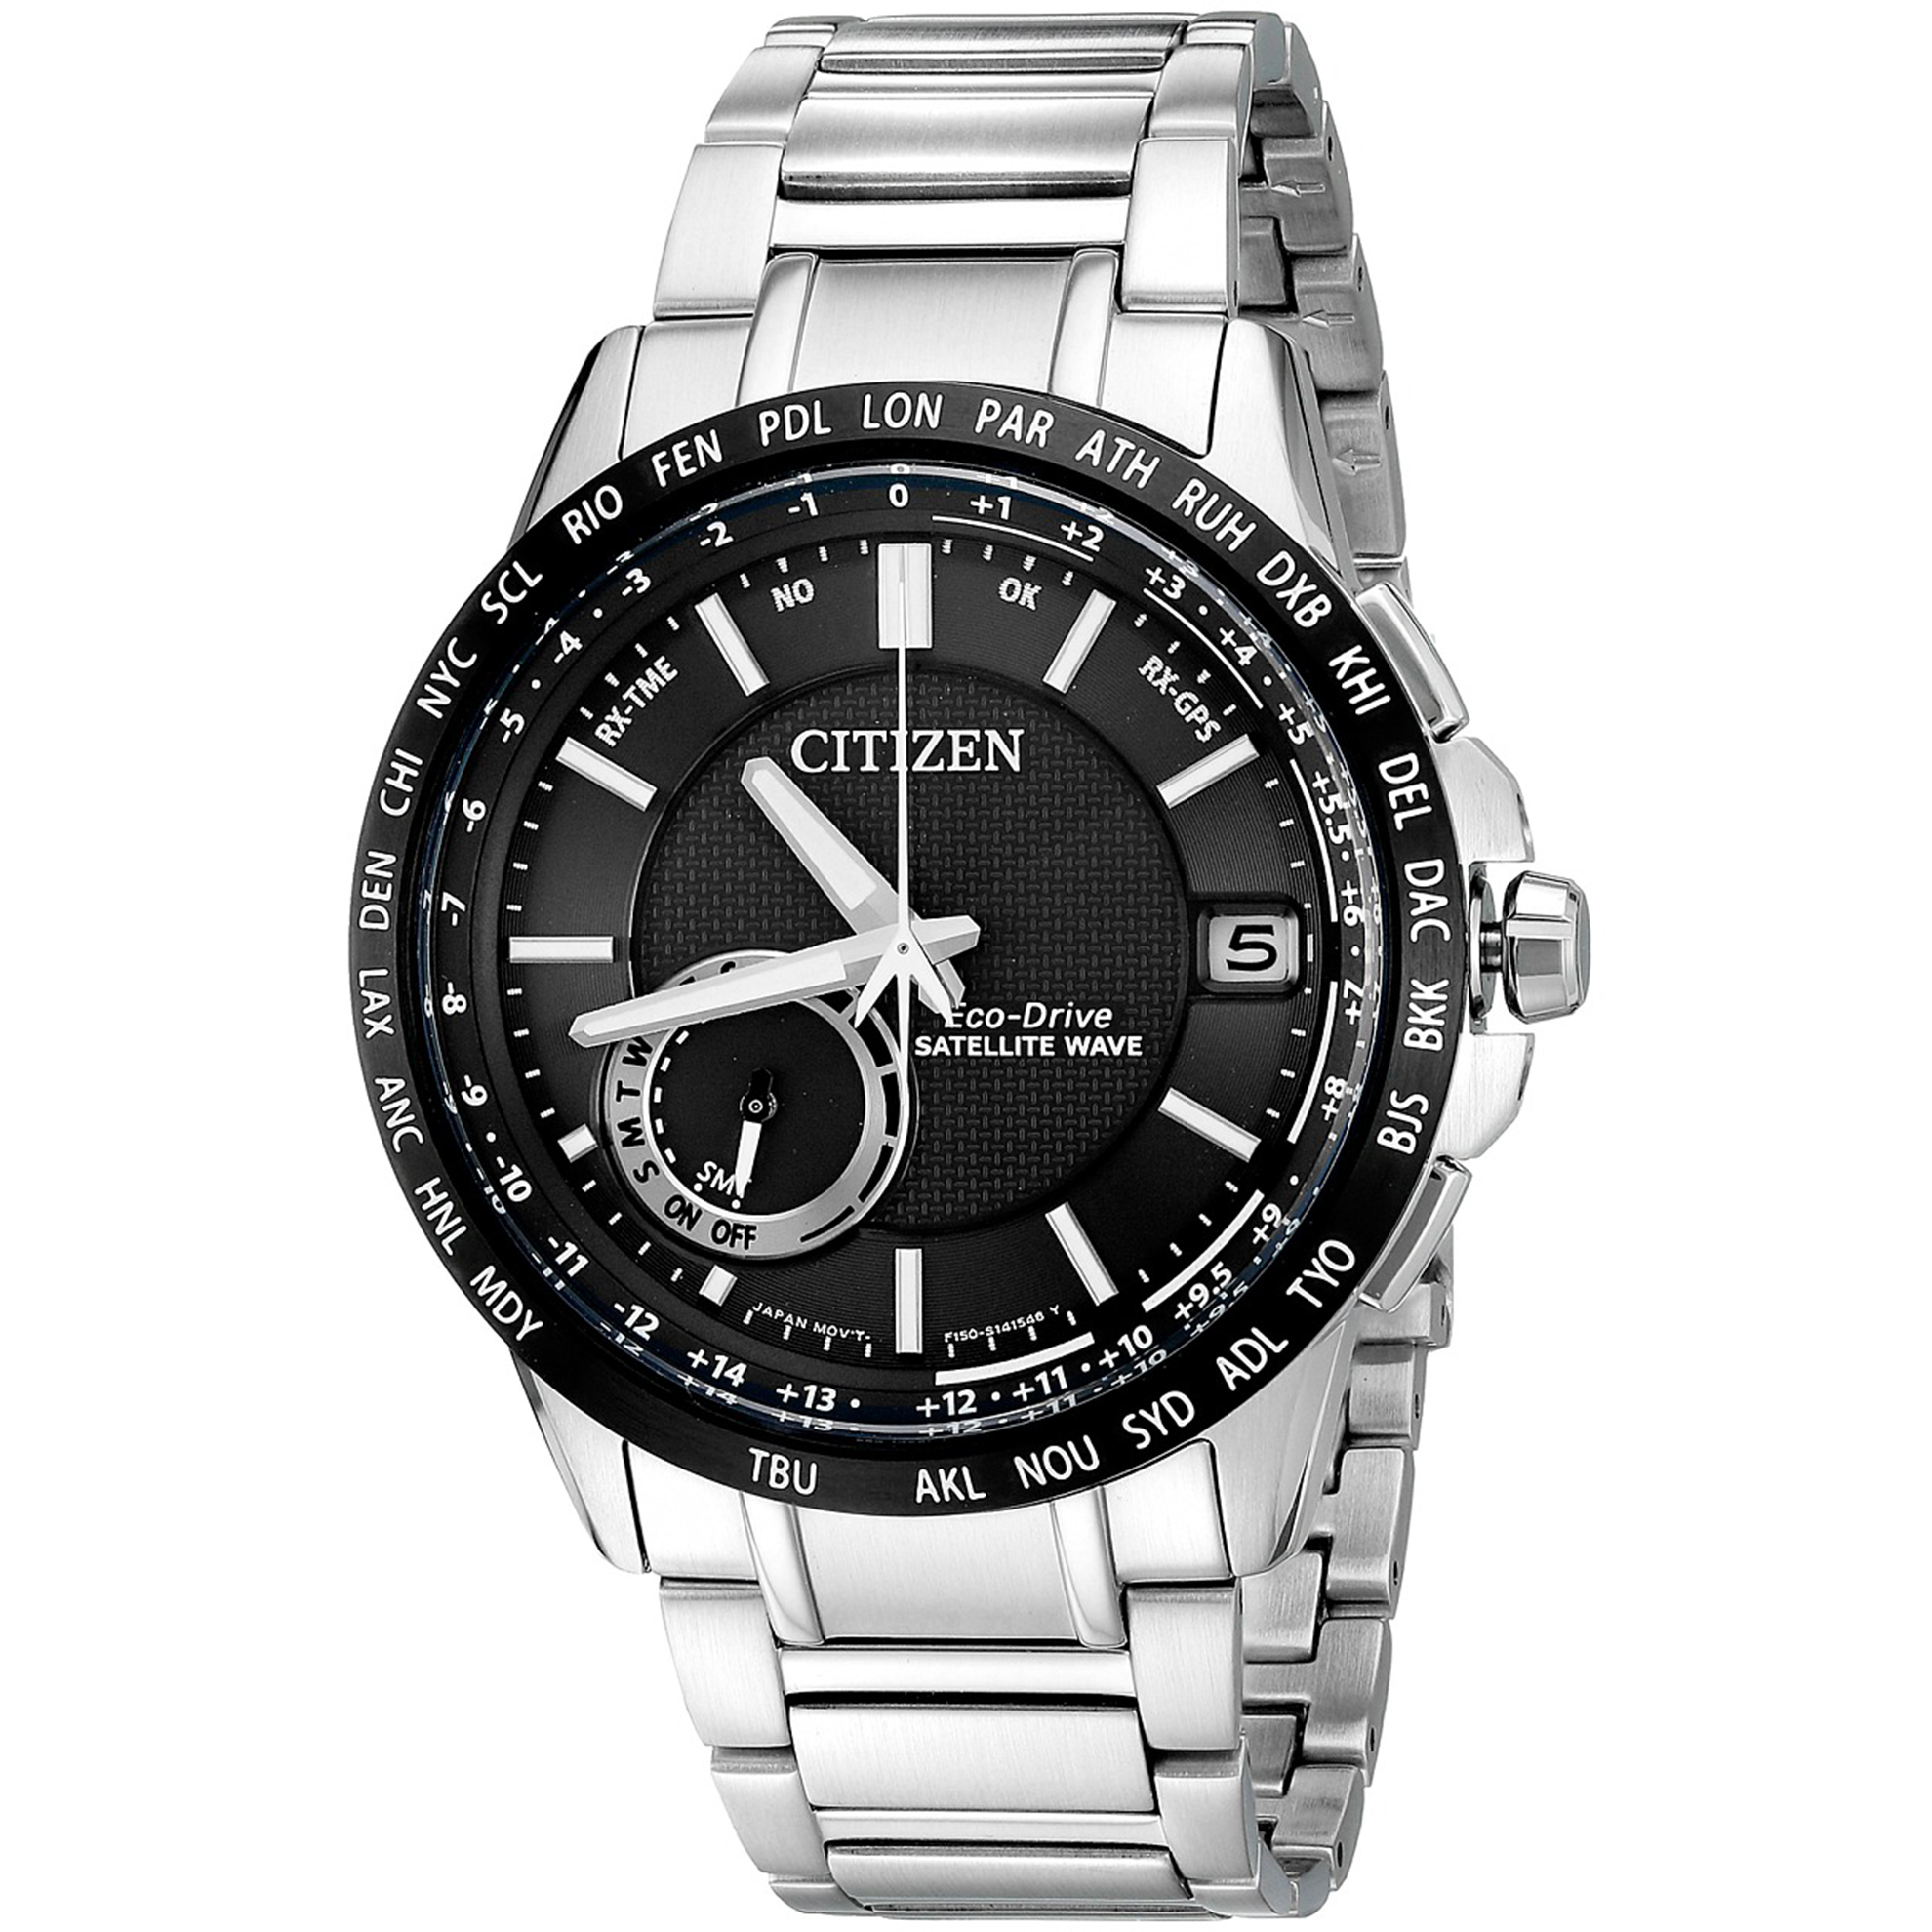 CC3005-85E Citizen SATELLITE WAVE - WORLD TIME GPS CC3005-85E